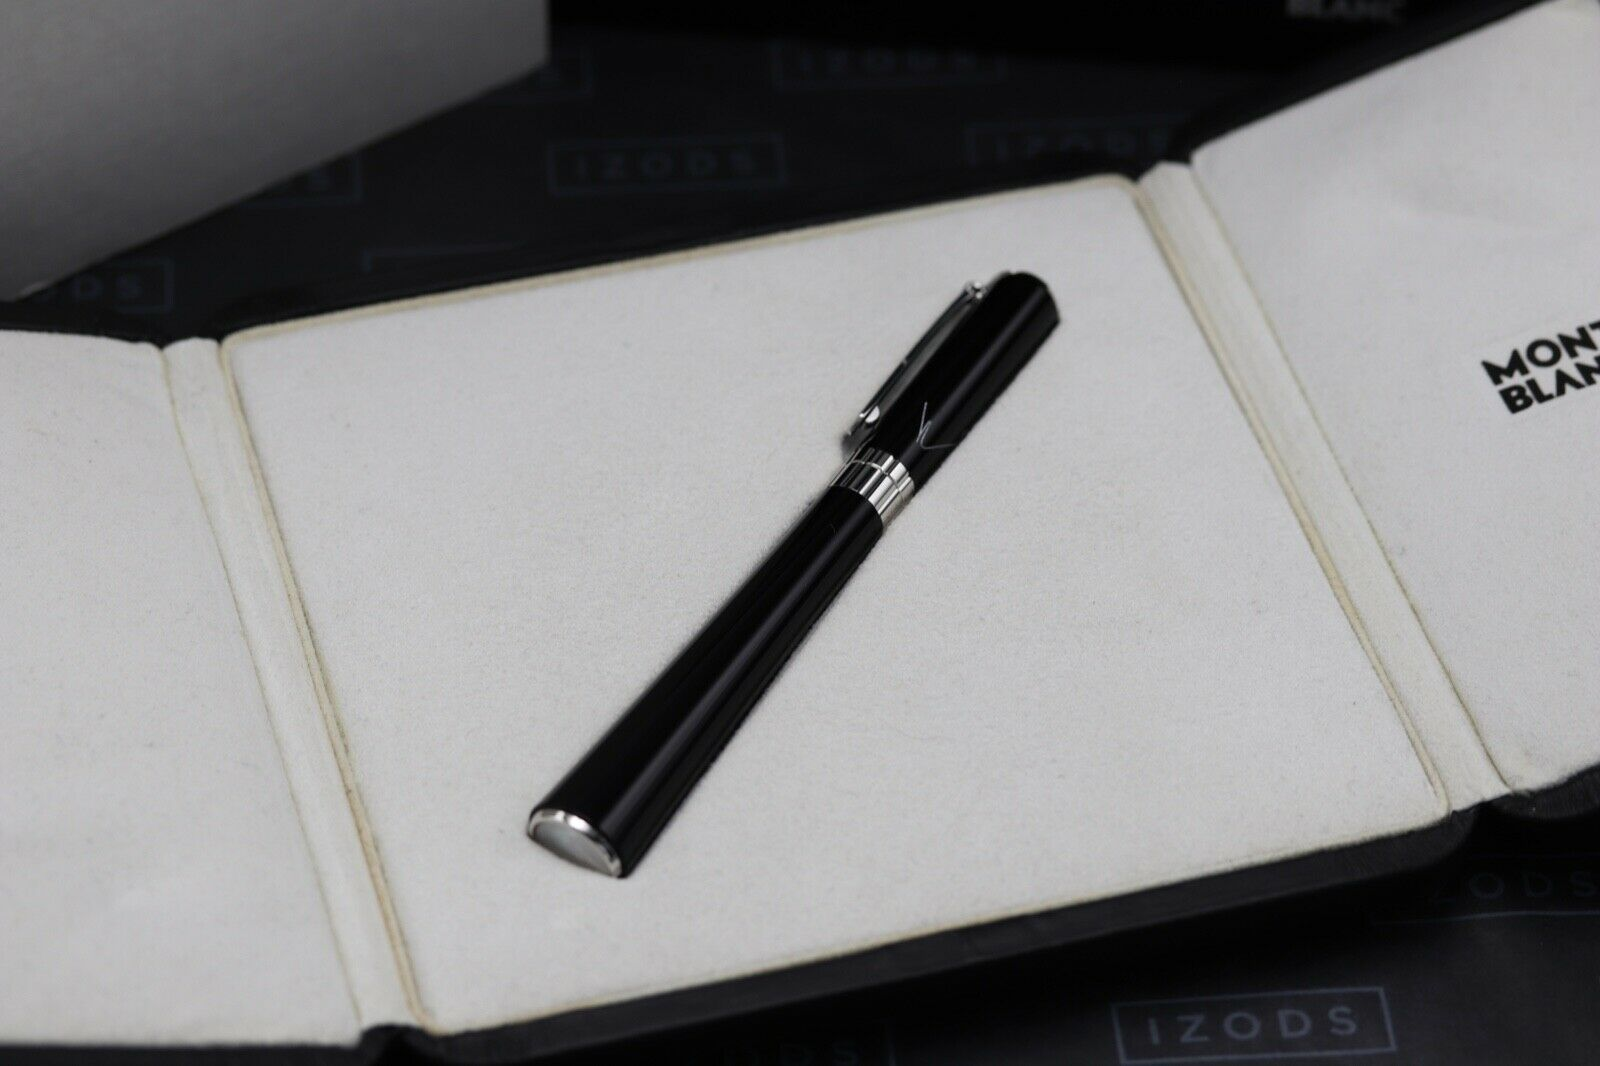 Montblanc Diva Line Marlene Dietrich Special Edition Fountain Pen - NEW MARCH 21 7